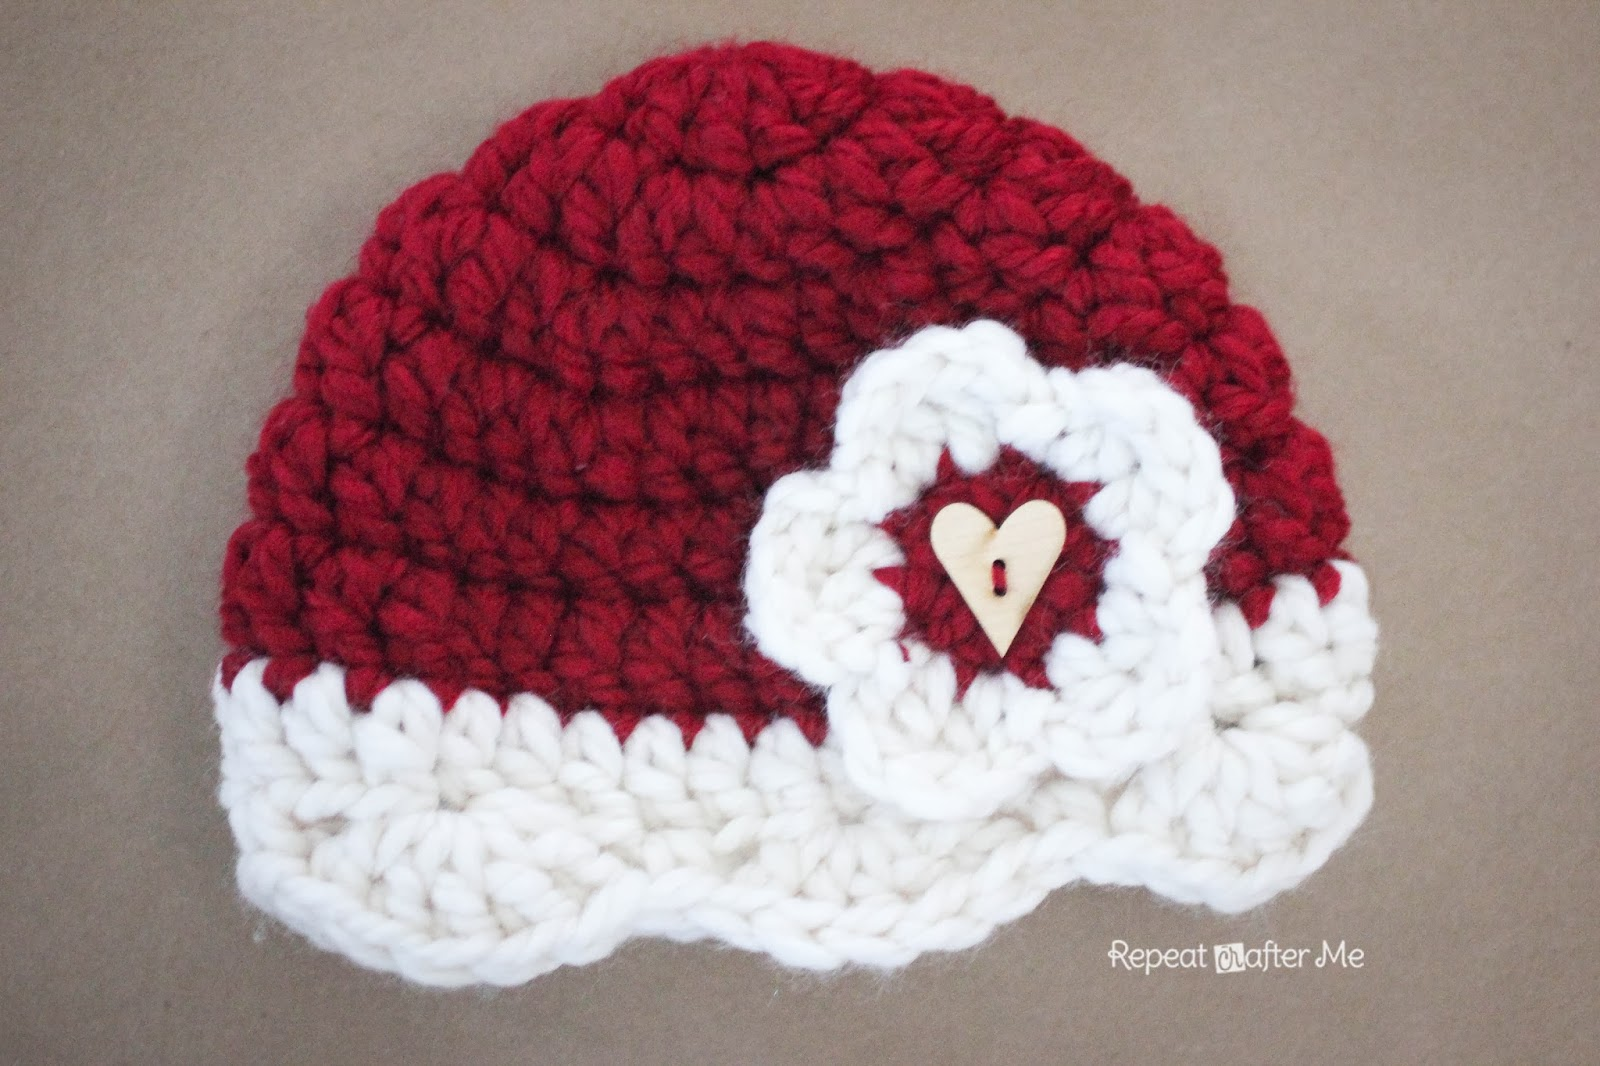 Crochet Valentine Hat Pattern - Repeat Crafter Me